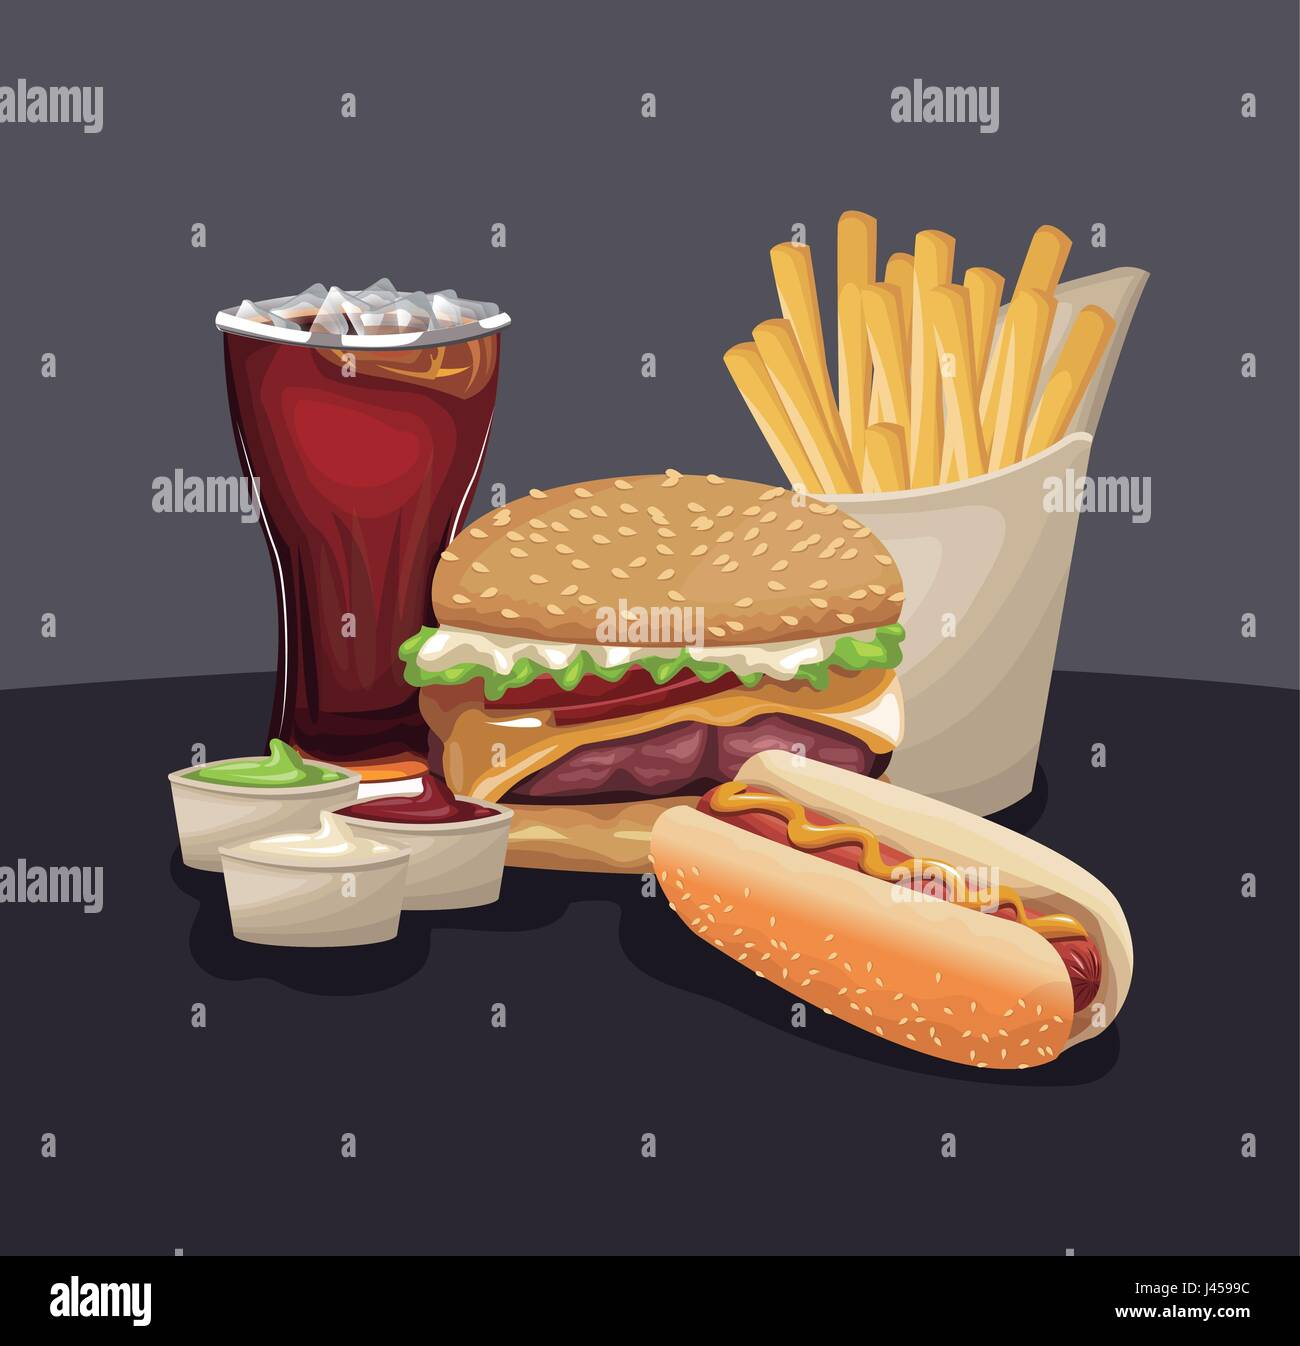 burger hot dog french fries soda sauces fast food eating - Stock Vector